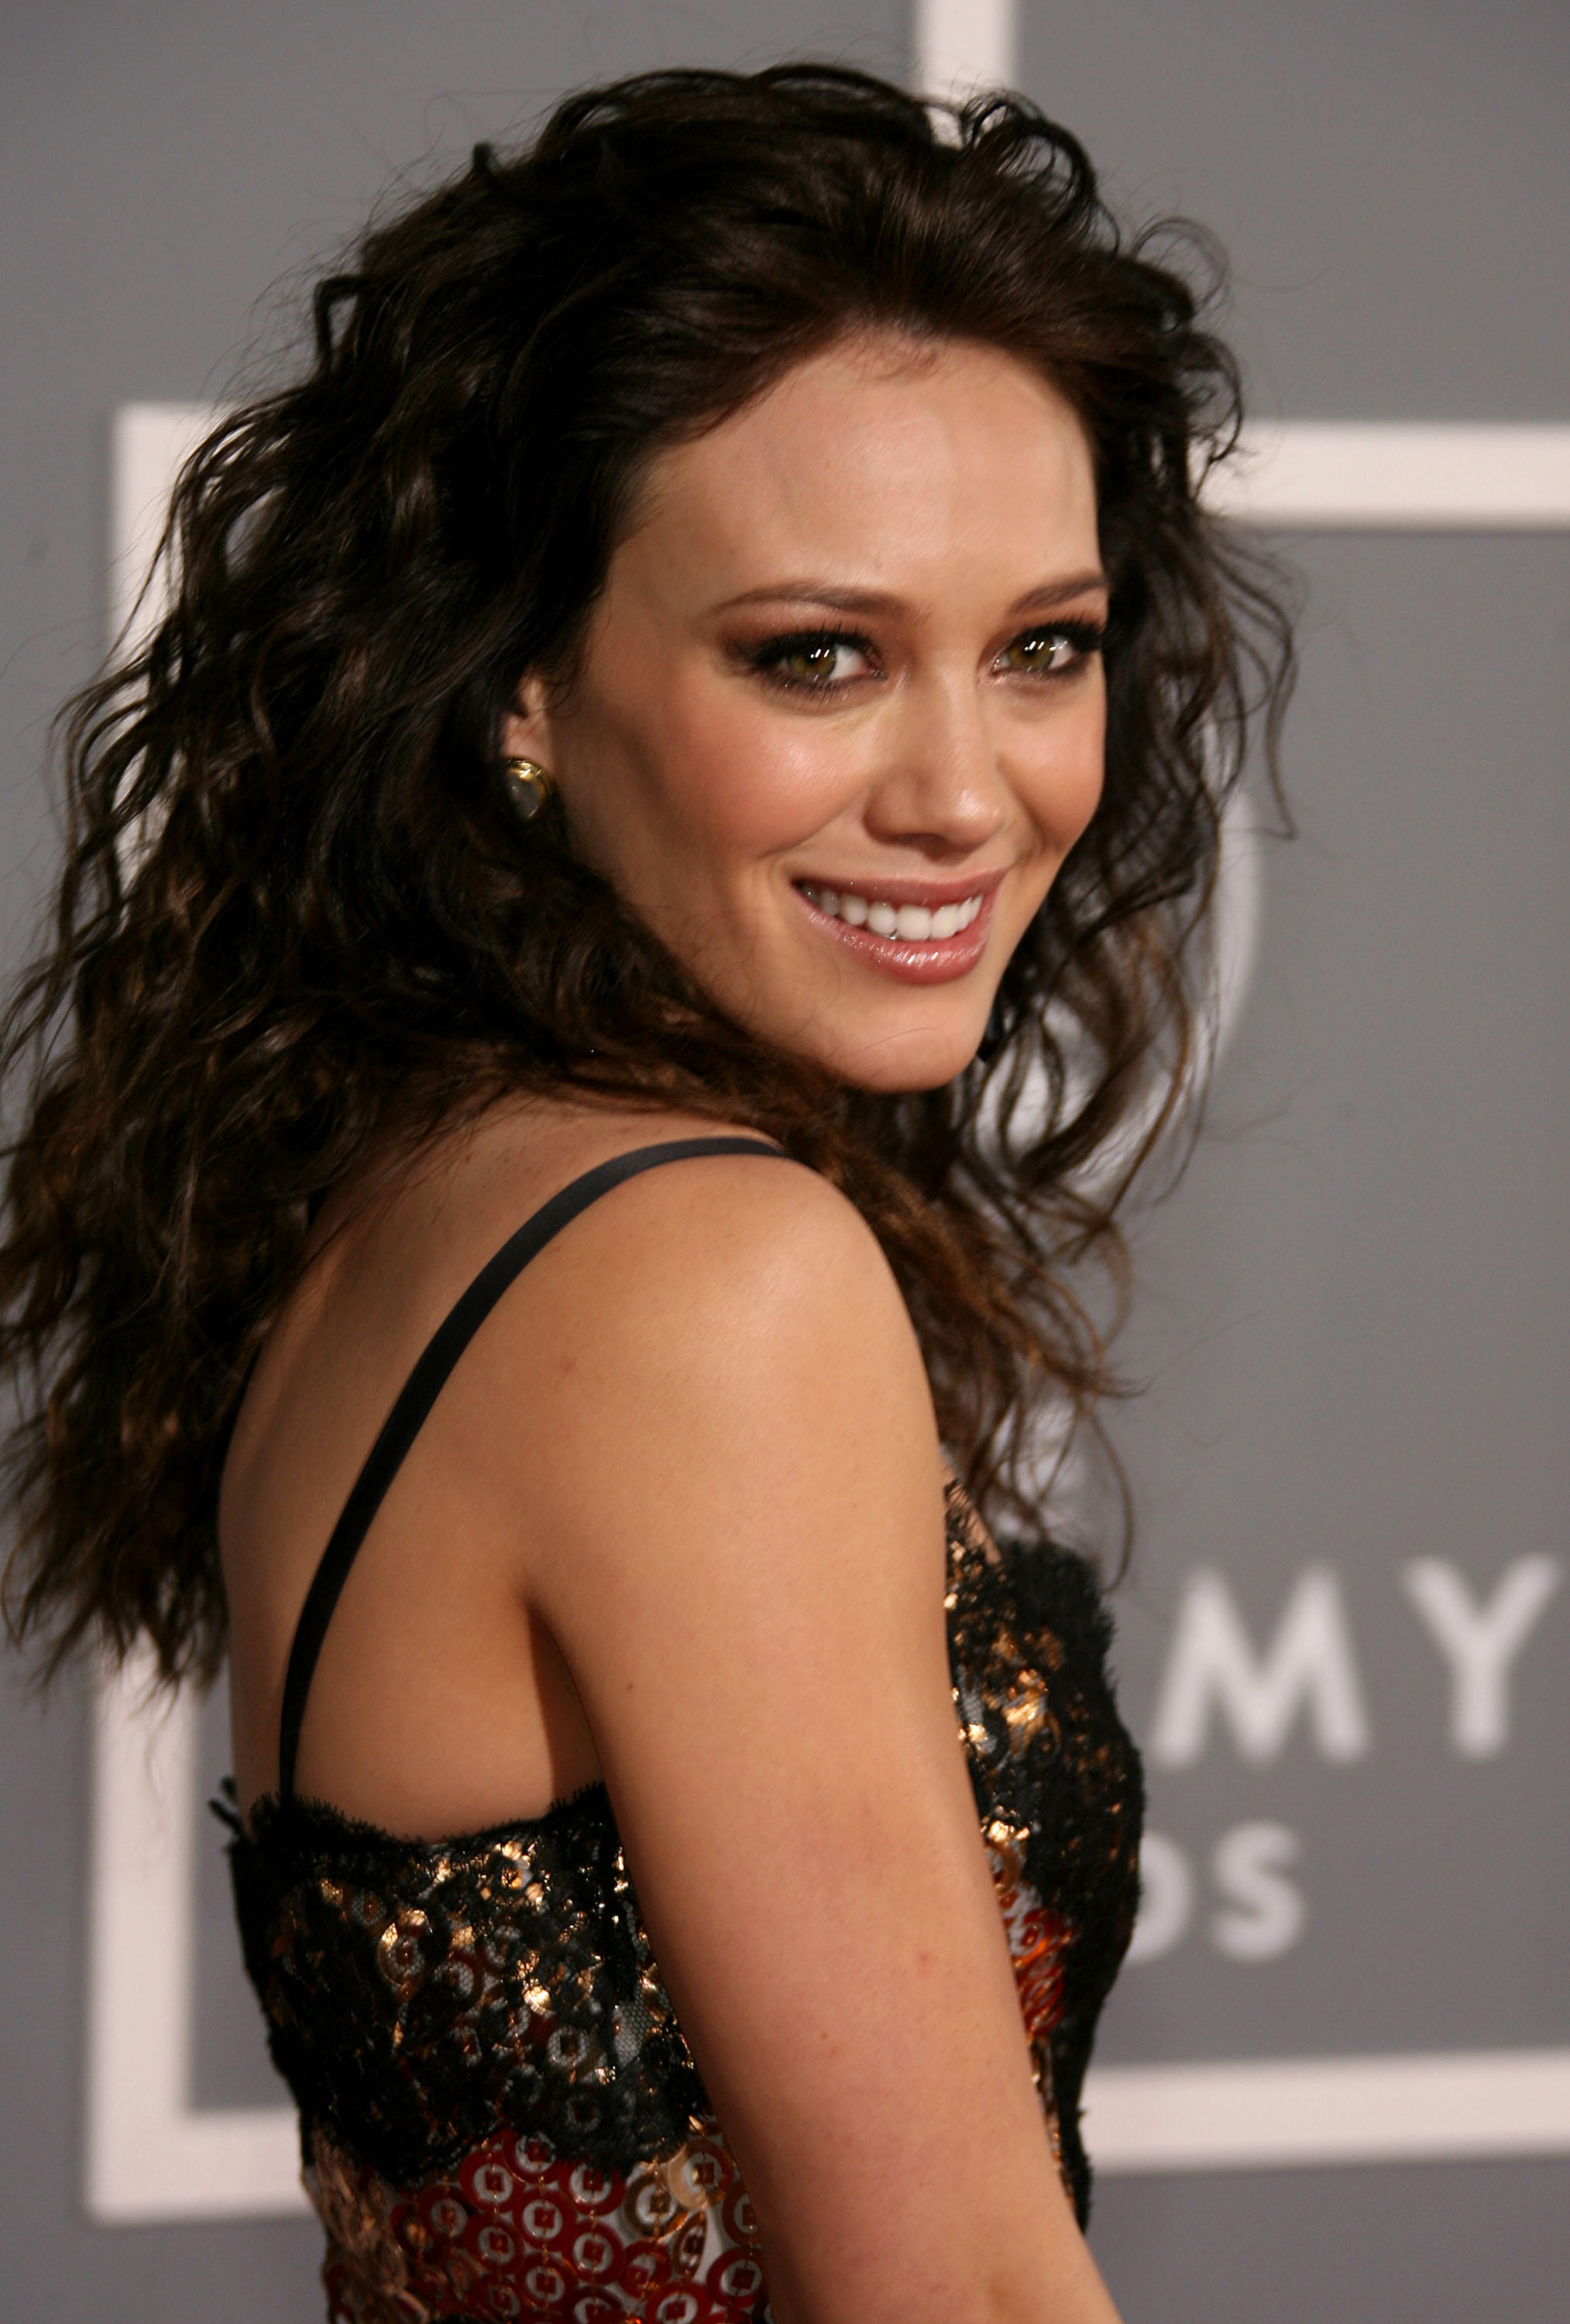 Hilary Duff at the 49th Annual Grammy Awards in Los Angeles, California.